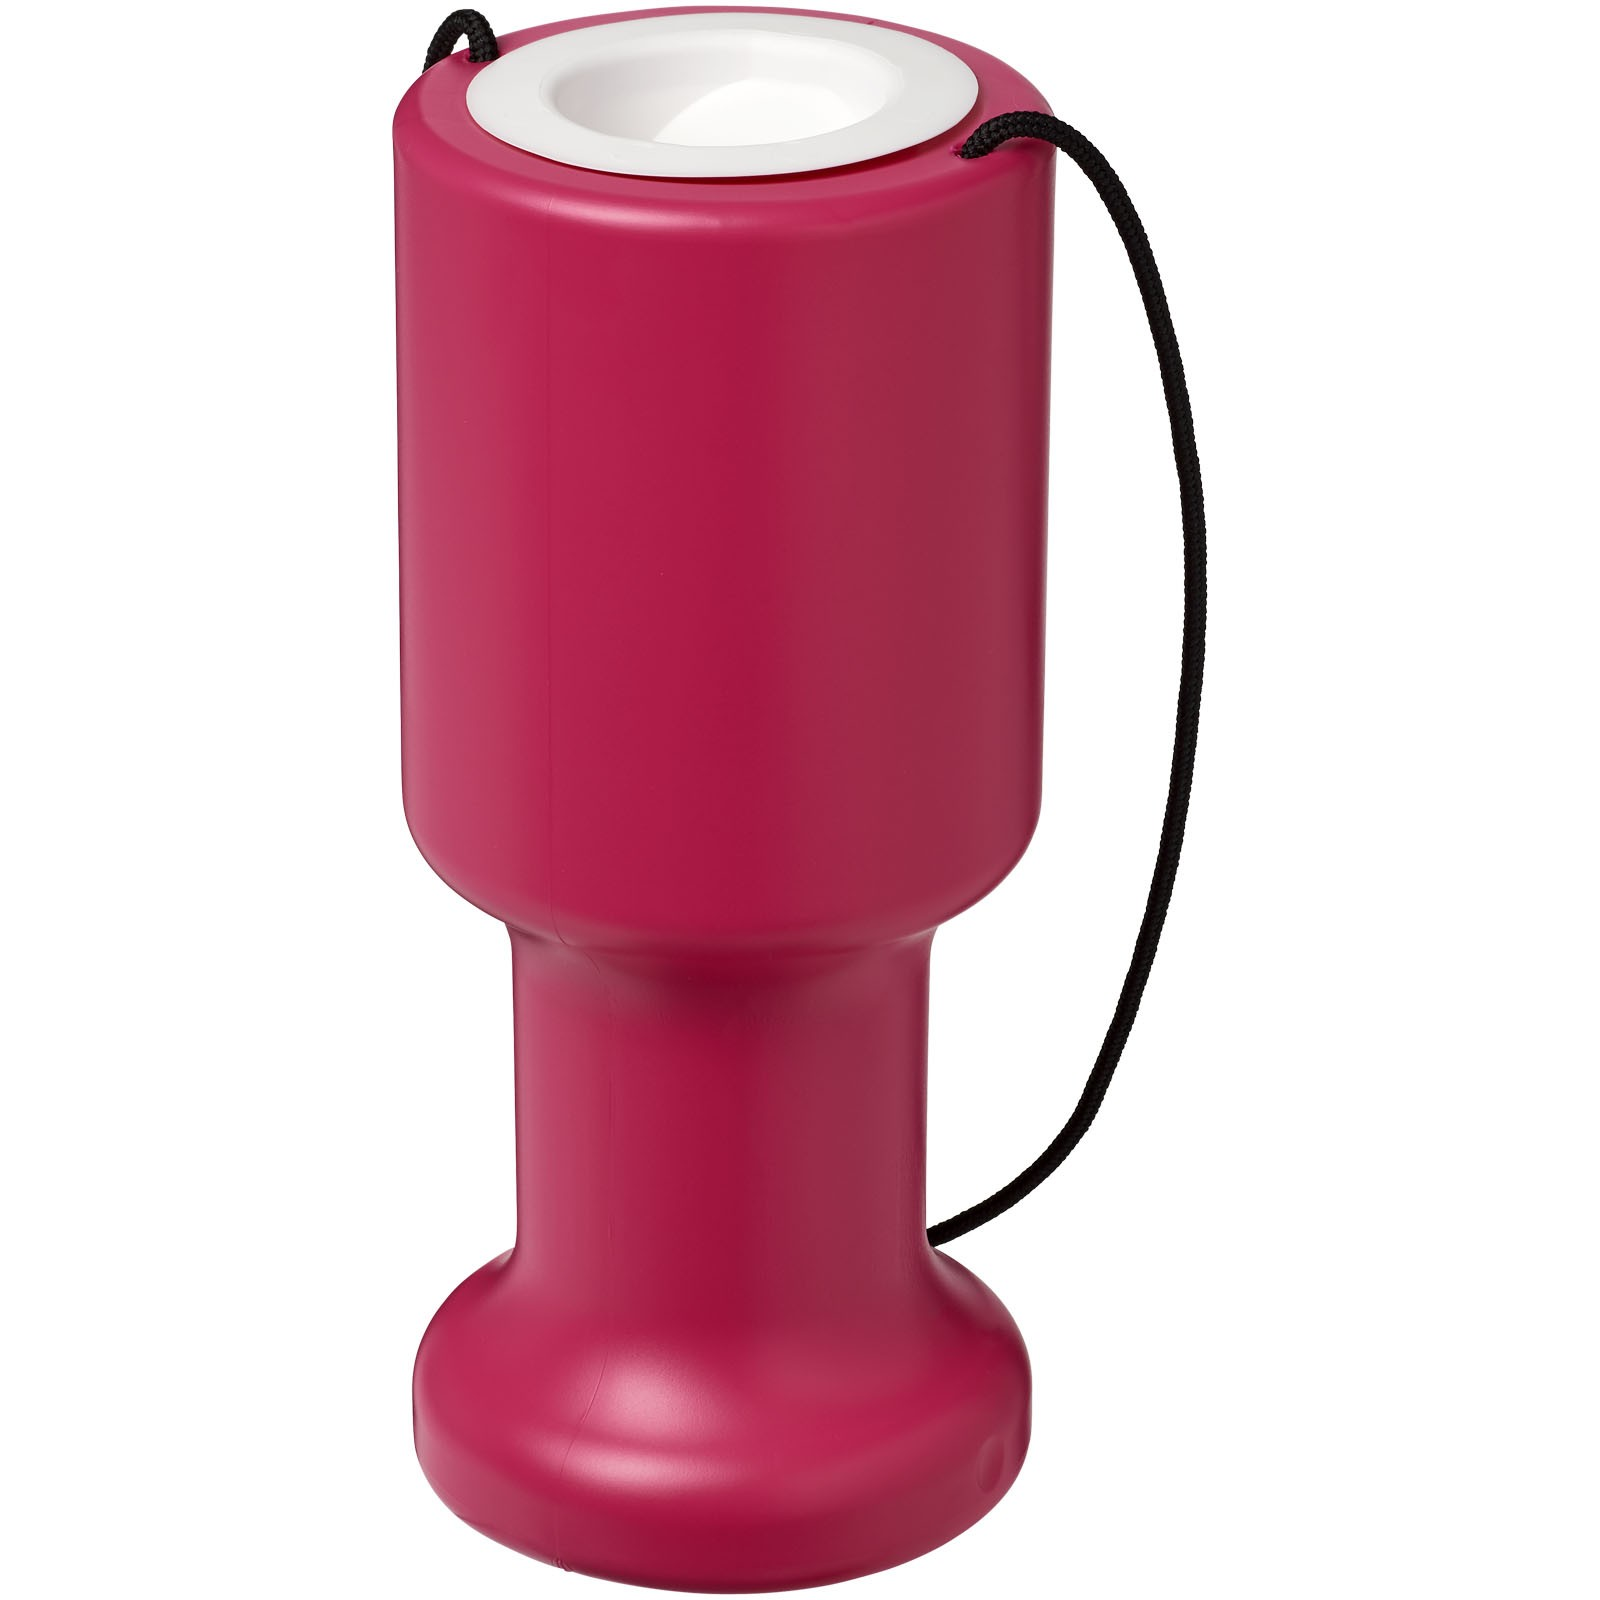 Asra hand held plastic charity container - Magenta